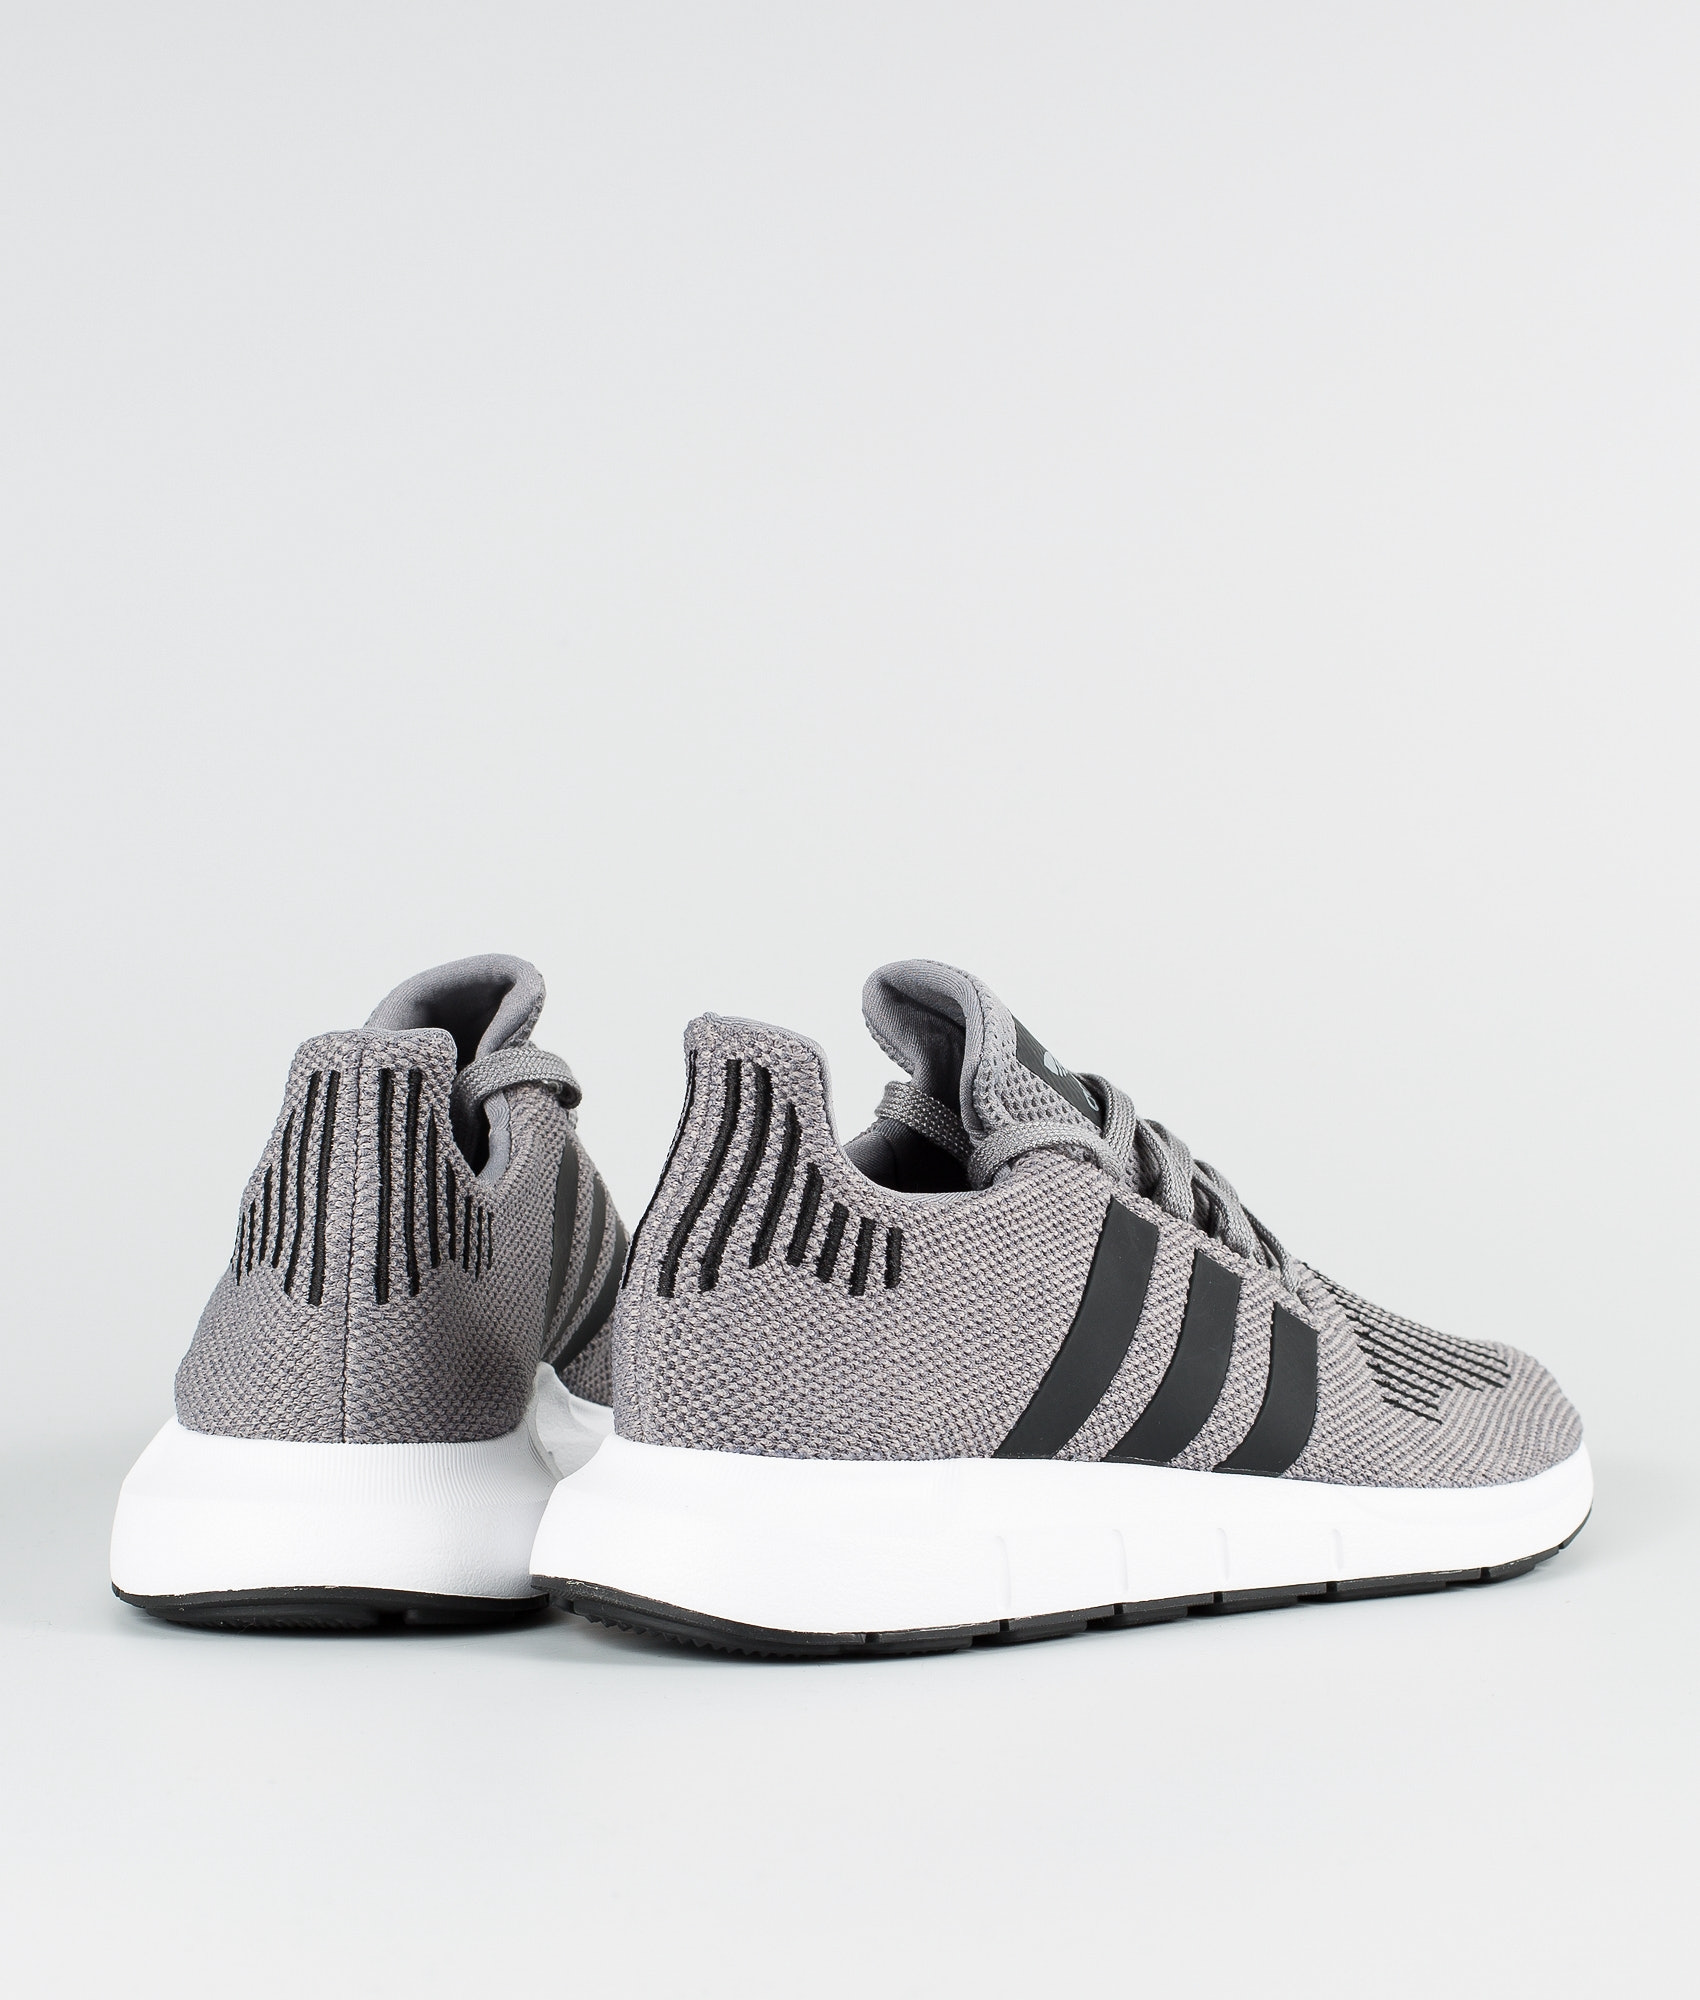 6c855d0f3b45f Adidas Originals Swift Run Shoes Grey Heather Core Black Medium Grey ...